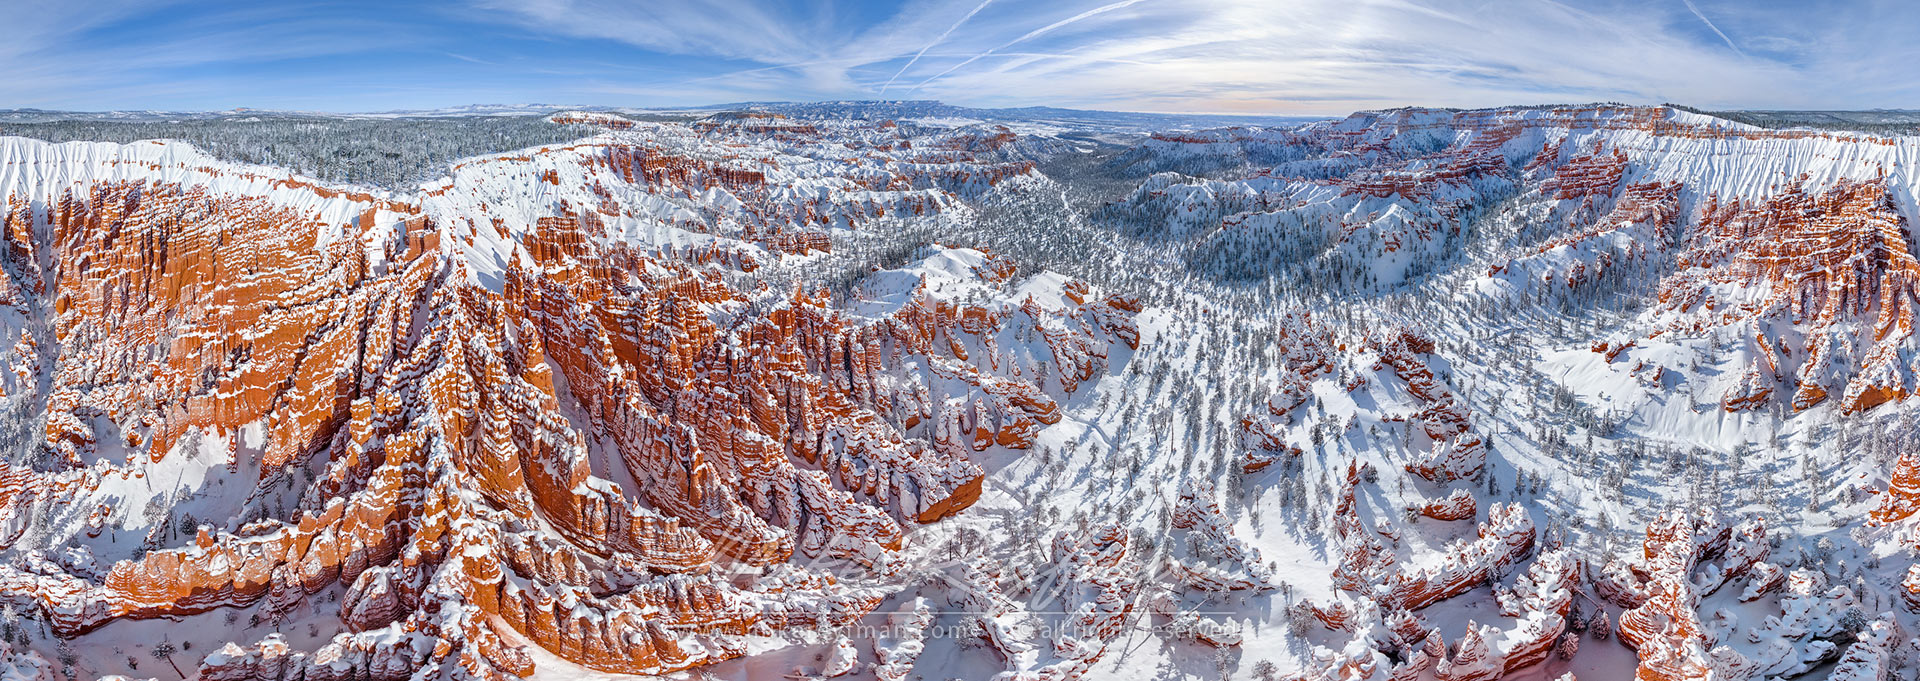 Winter Fairy-Tails. 360 degree aerial panoramic view of Bryce Canyon National Park, Utah, USA. - Bryce-Canyon-National-Park-Utah-USA - Mike Reyfman Photography